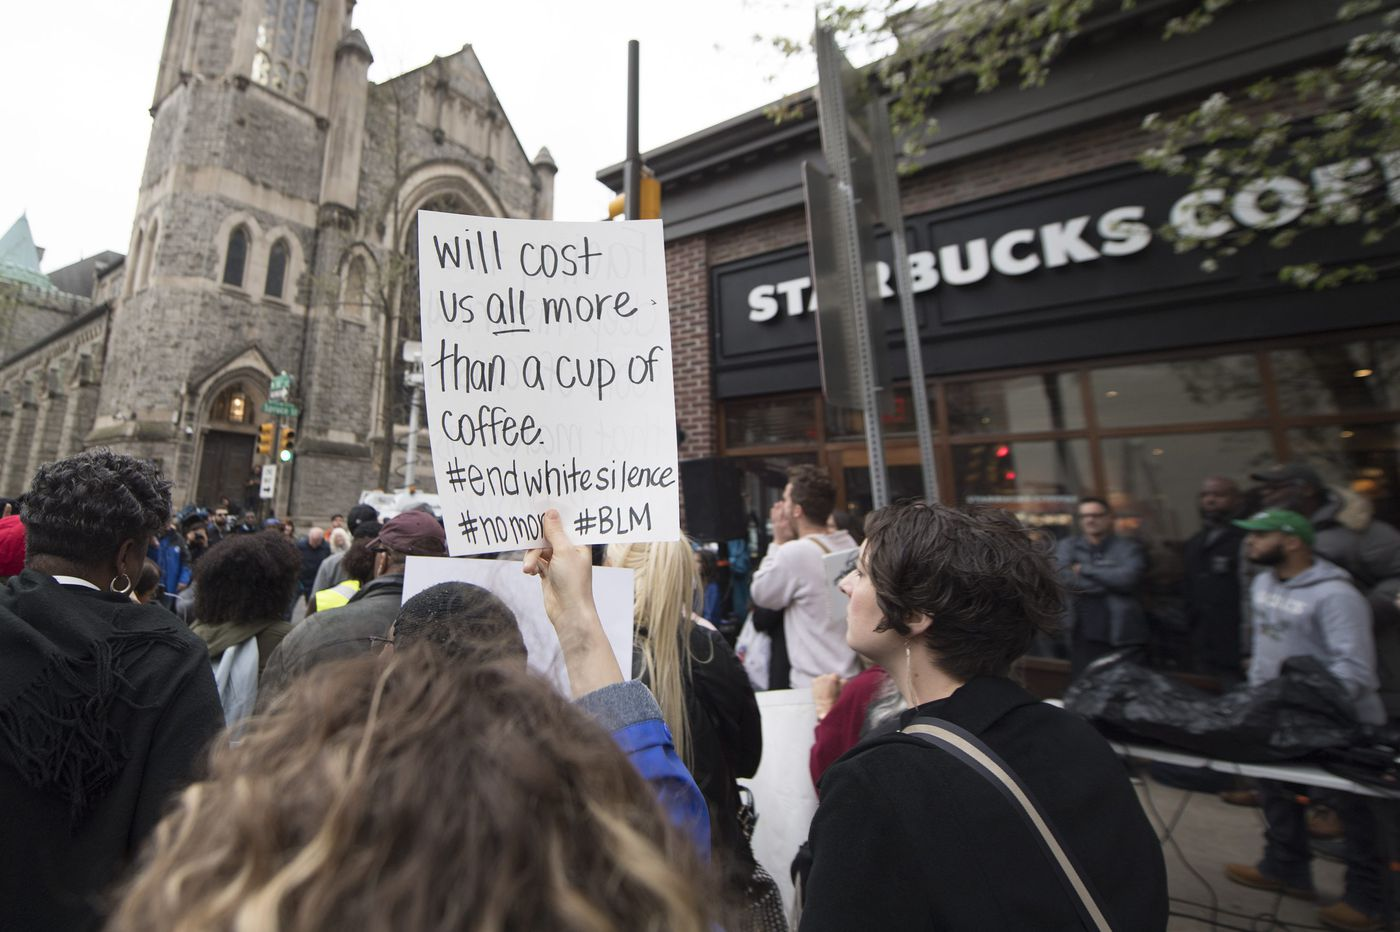 Starbucks gets recommendations on how to address bias